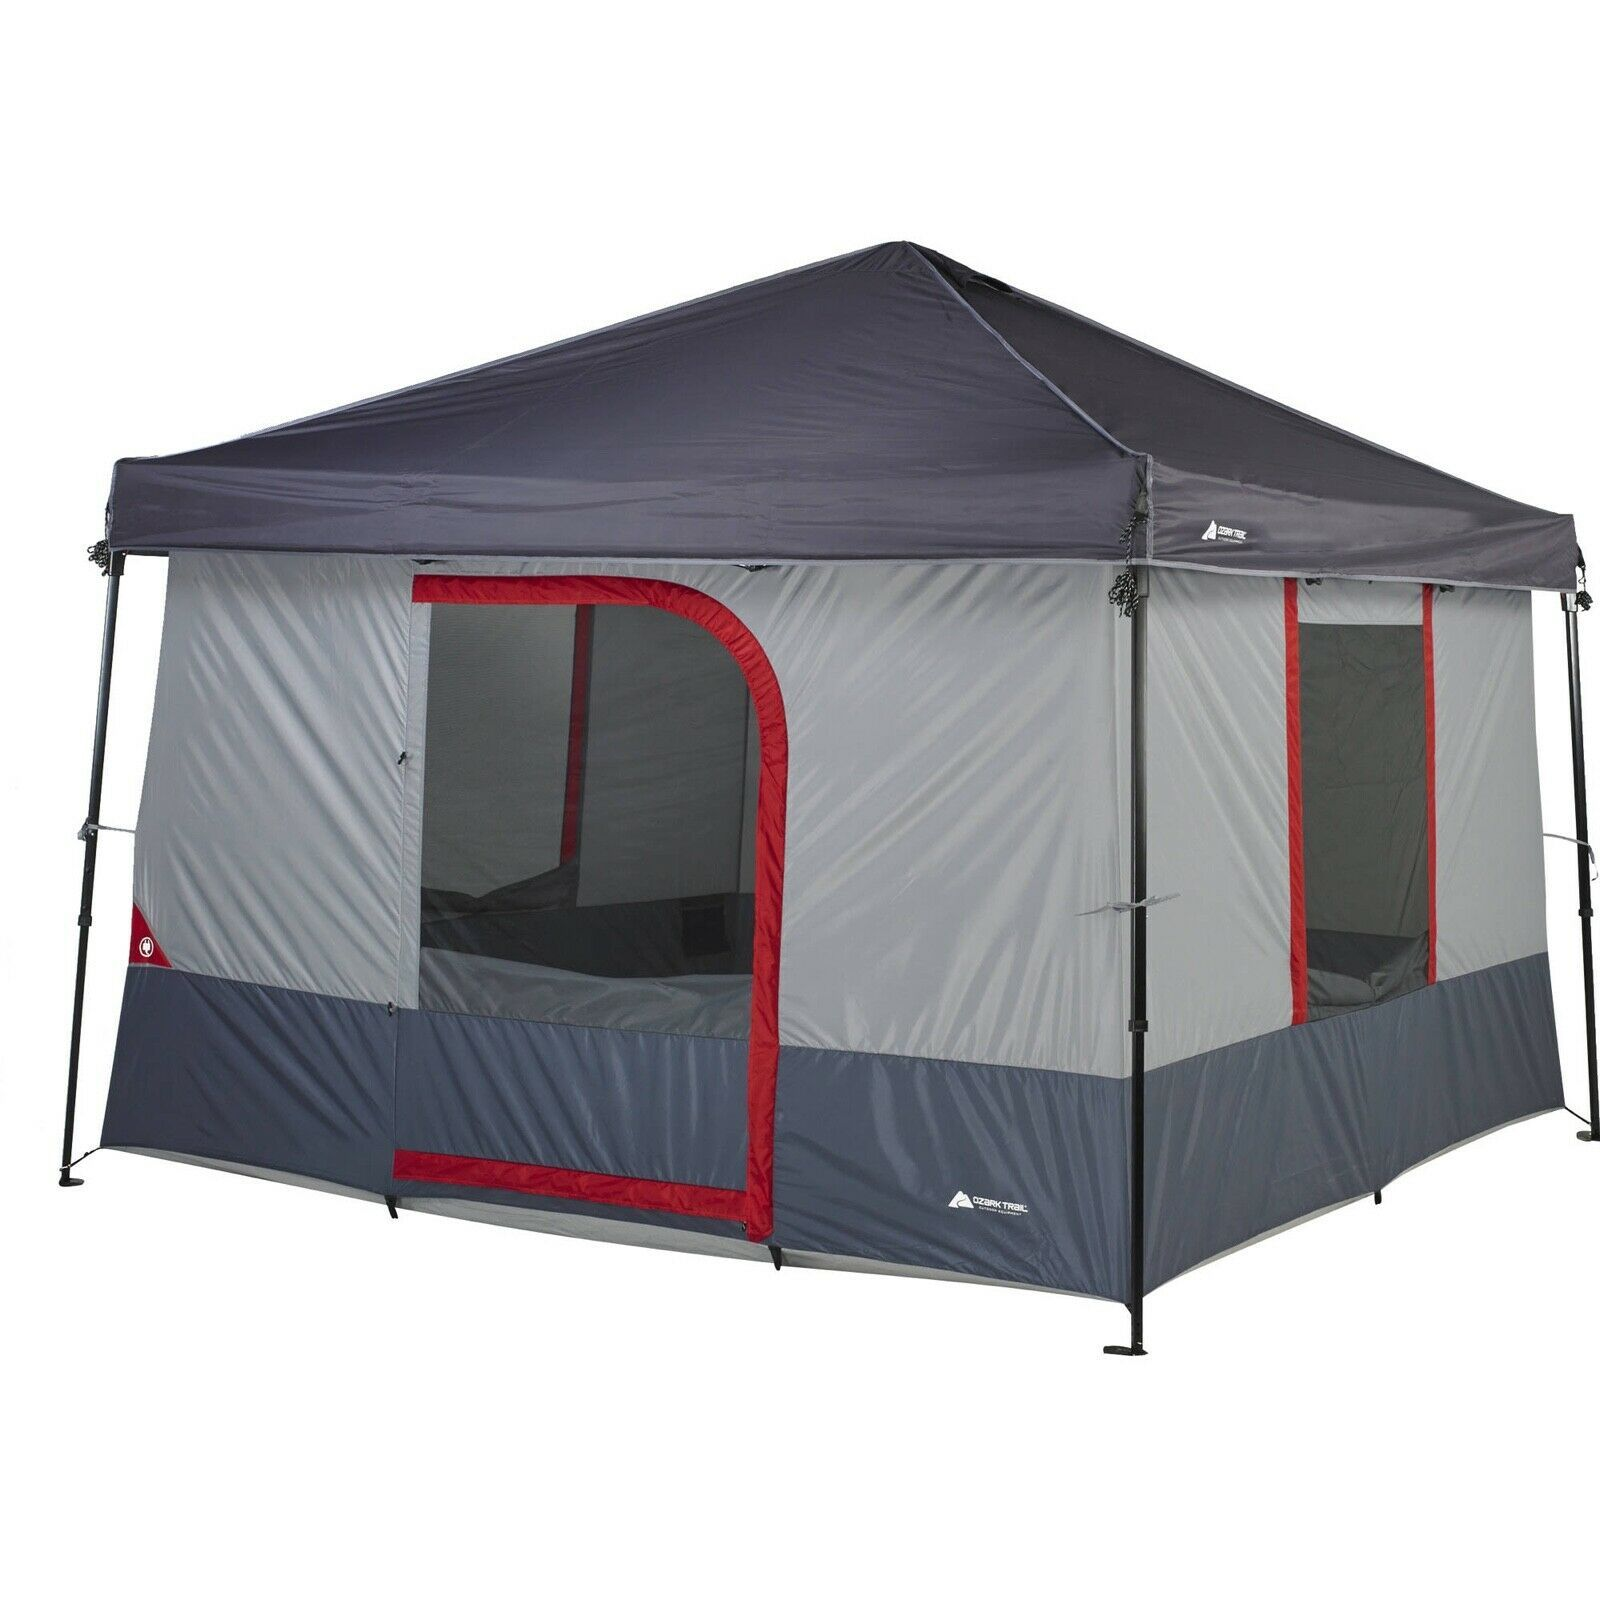 Top 7 Best Camping Tents In Summer 2019 Shopping Guide Camping Canopy Family Tent Camping Cabin Tent